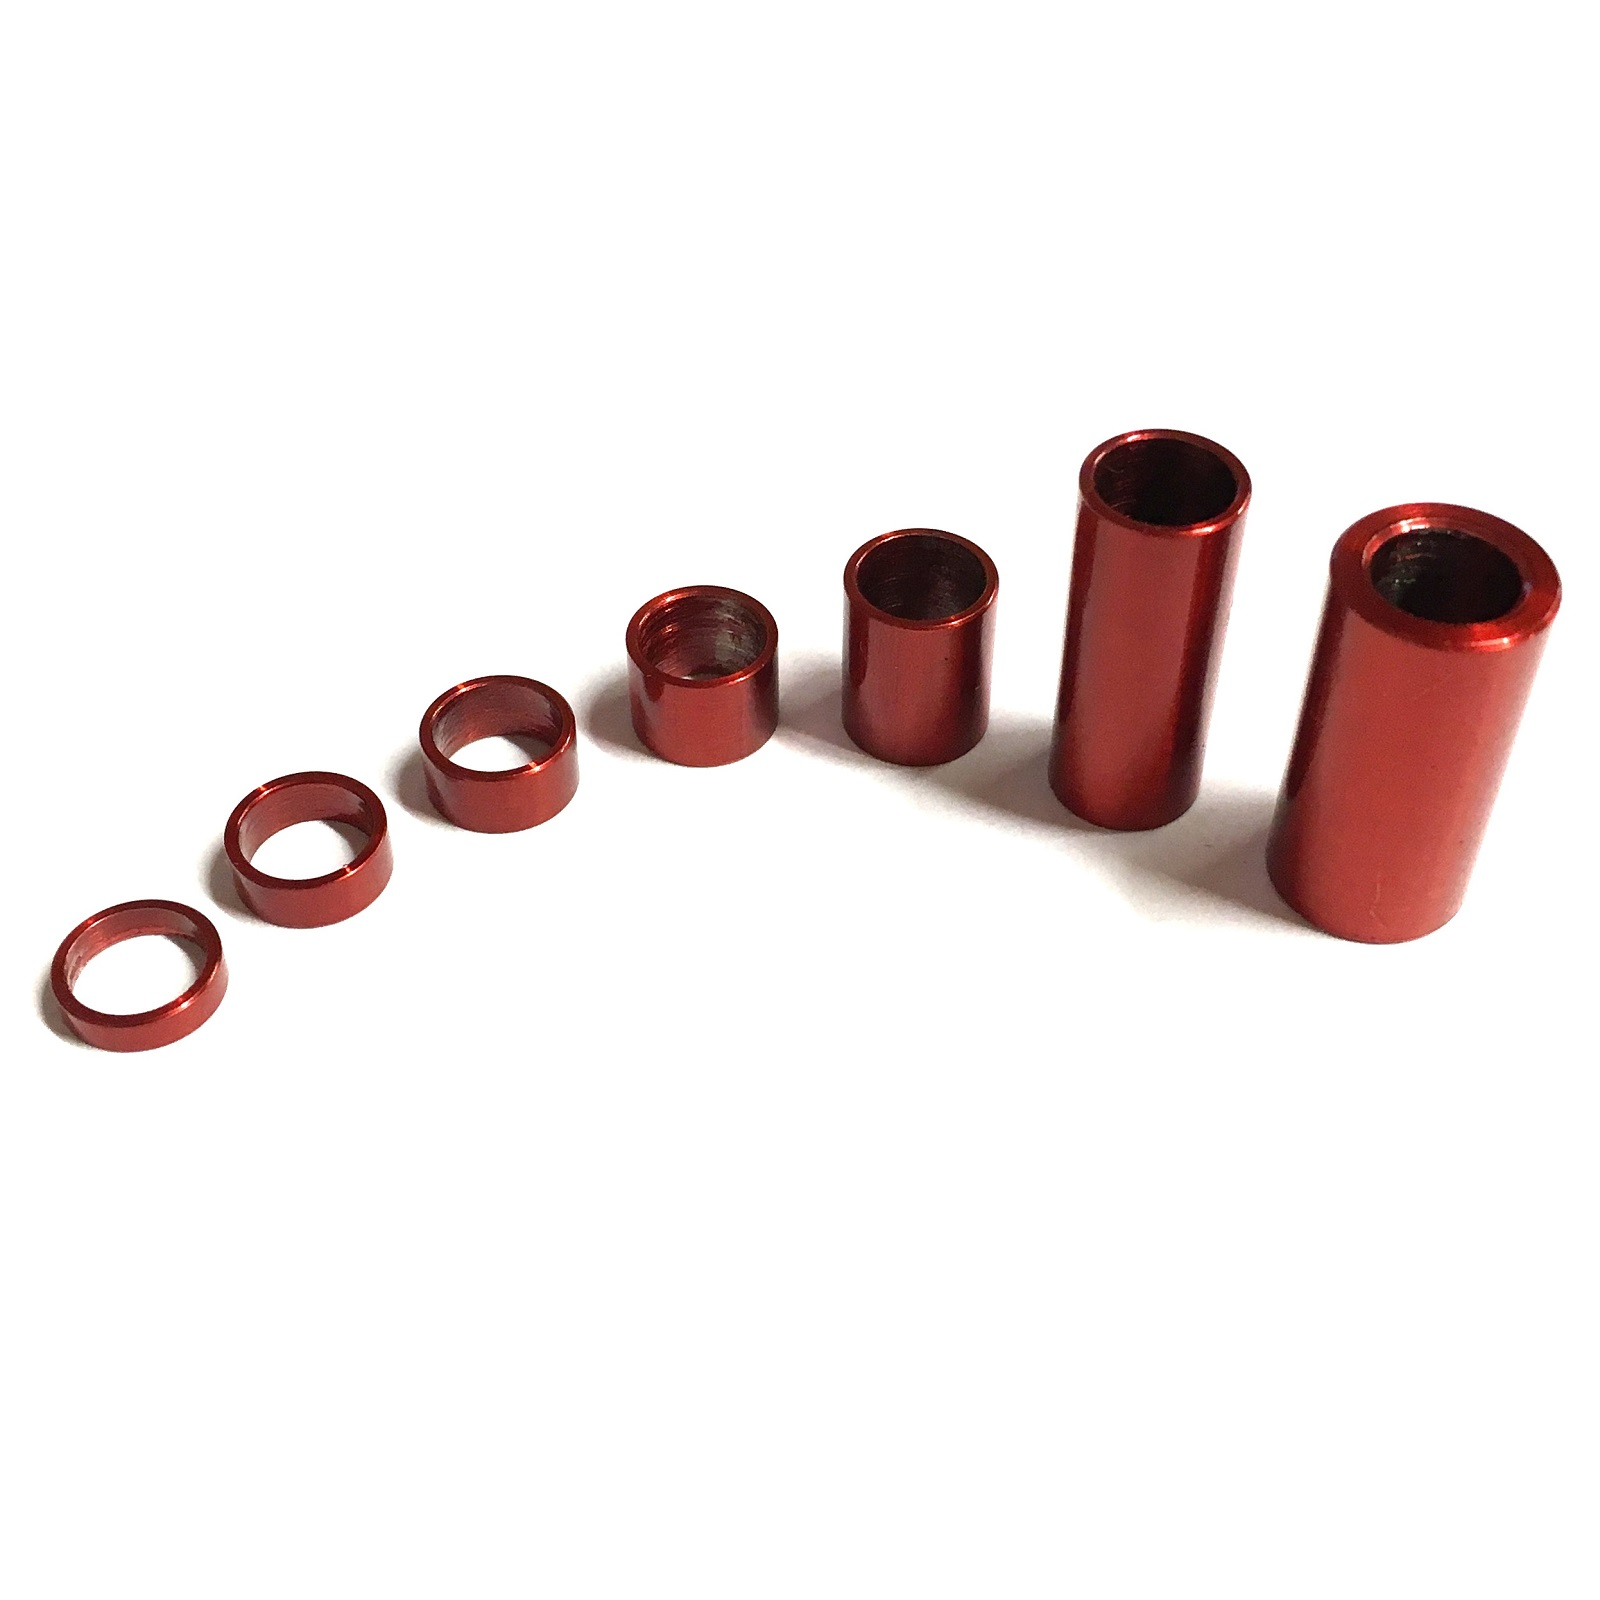 M5 or M6 Stainless Steel tube spacer Standoff 8mm Diameter 6mm hole all lengths